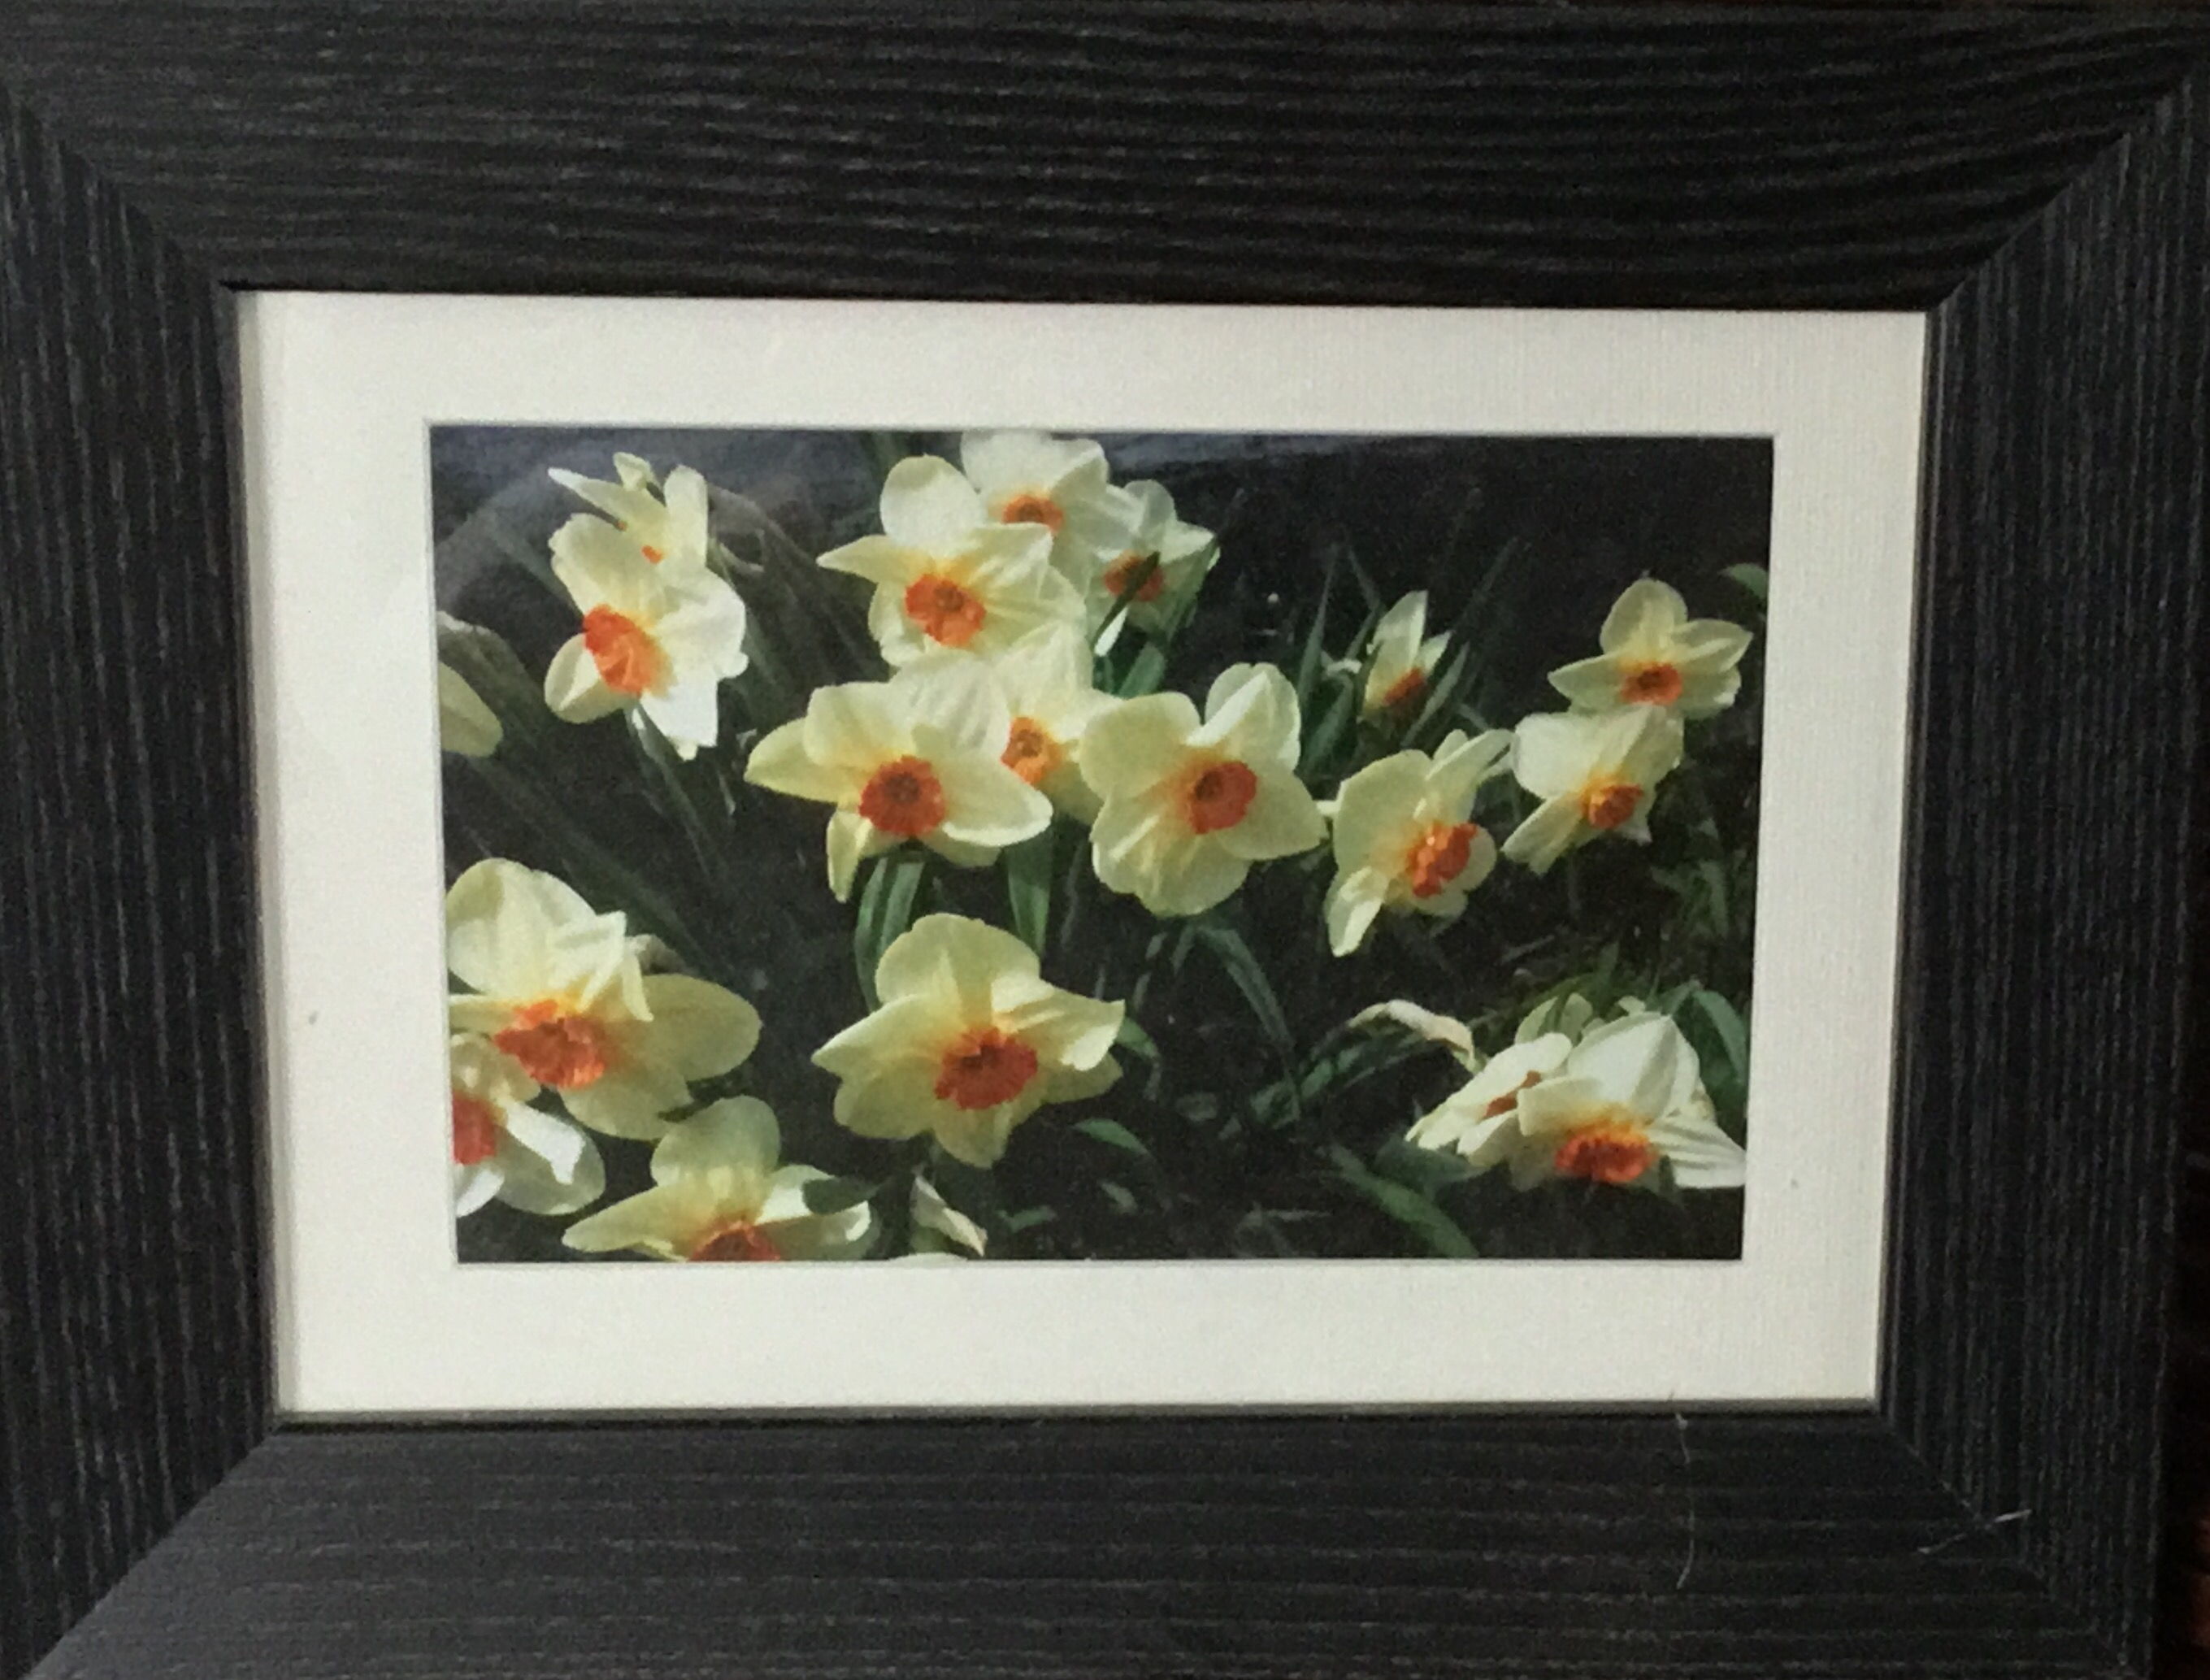 Framed Photograph, Daffodils